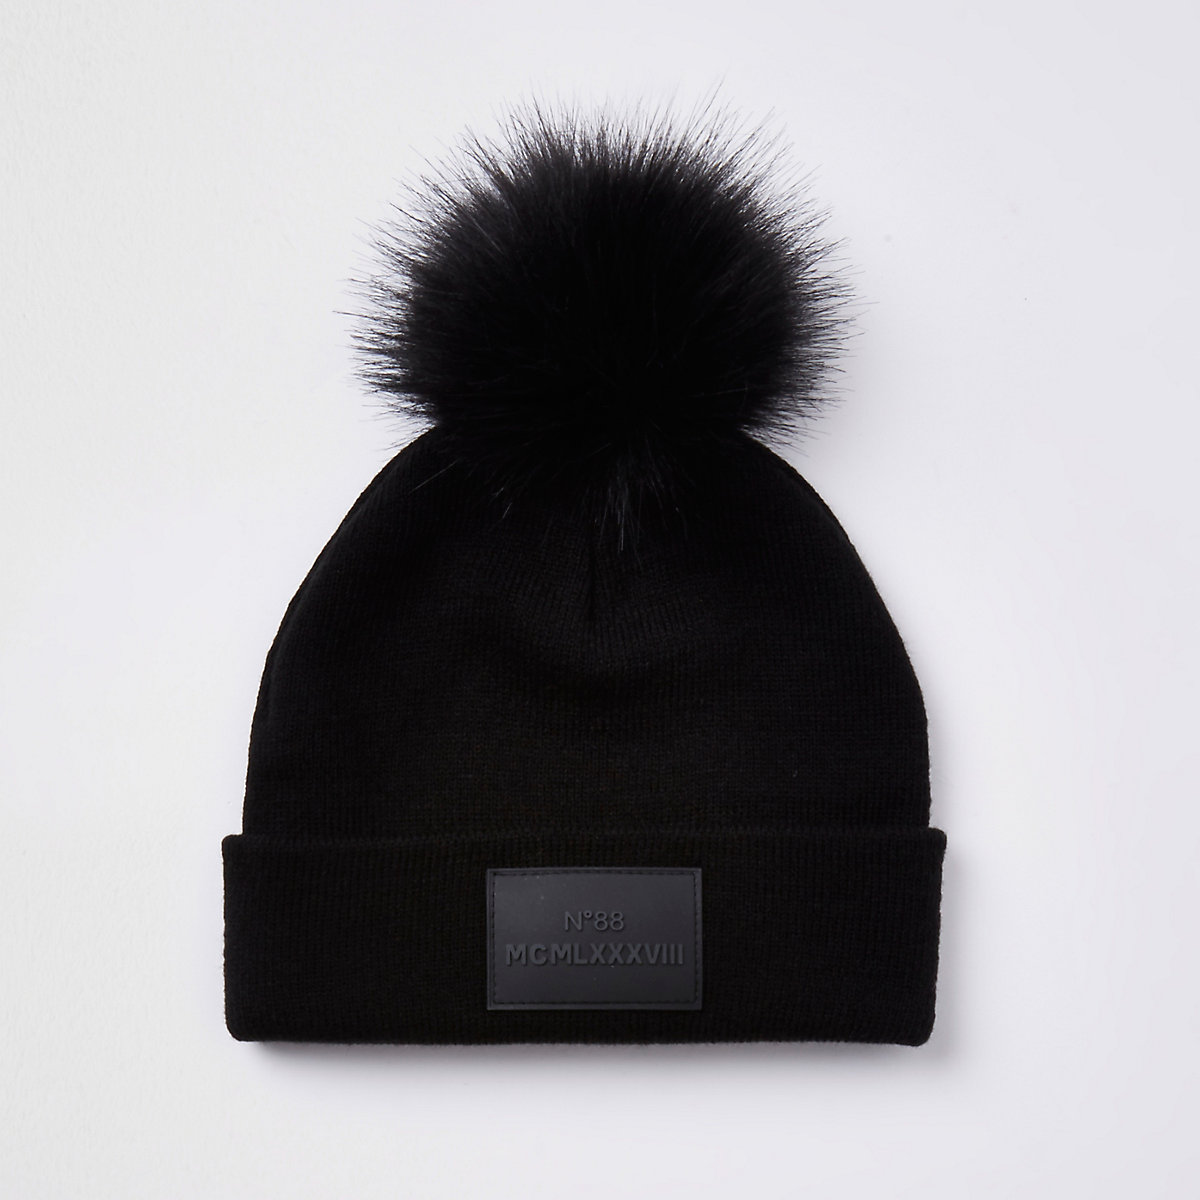 Boys black faux fur pom pom beanie hat - Hats - Accessories - boys 54e6c0a85b0